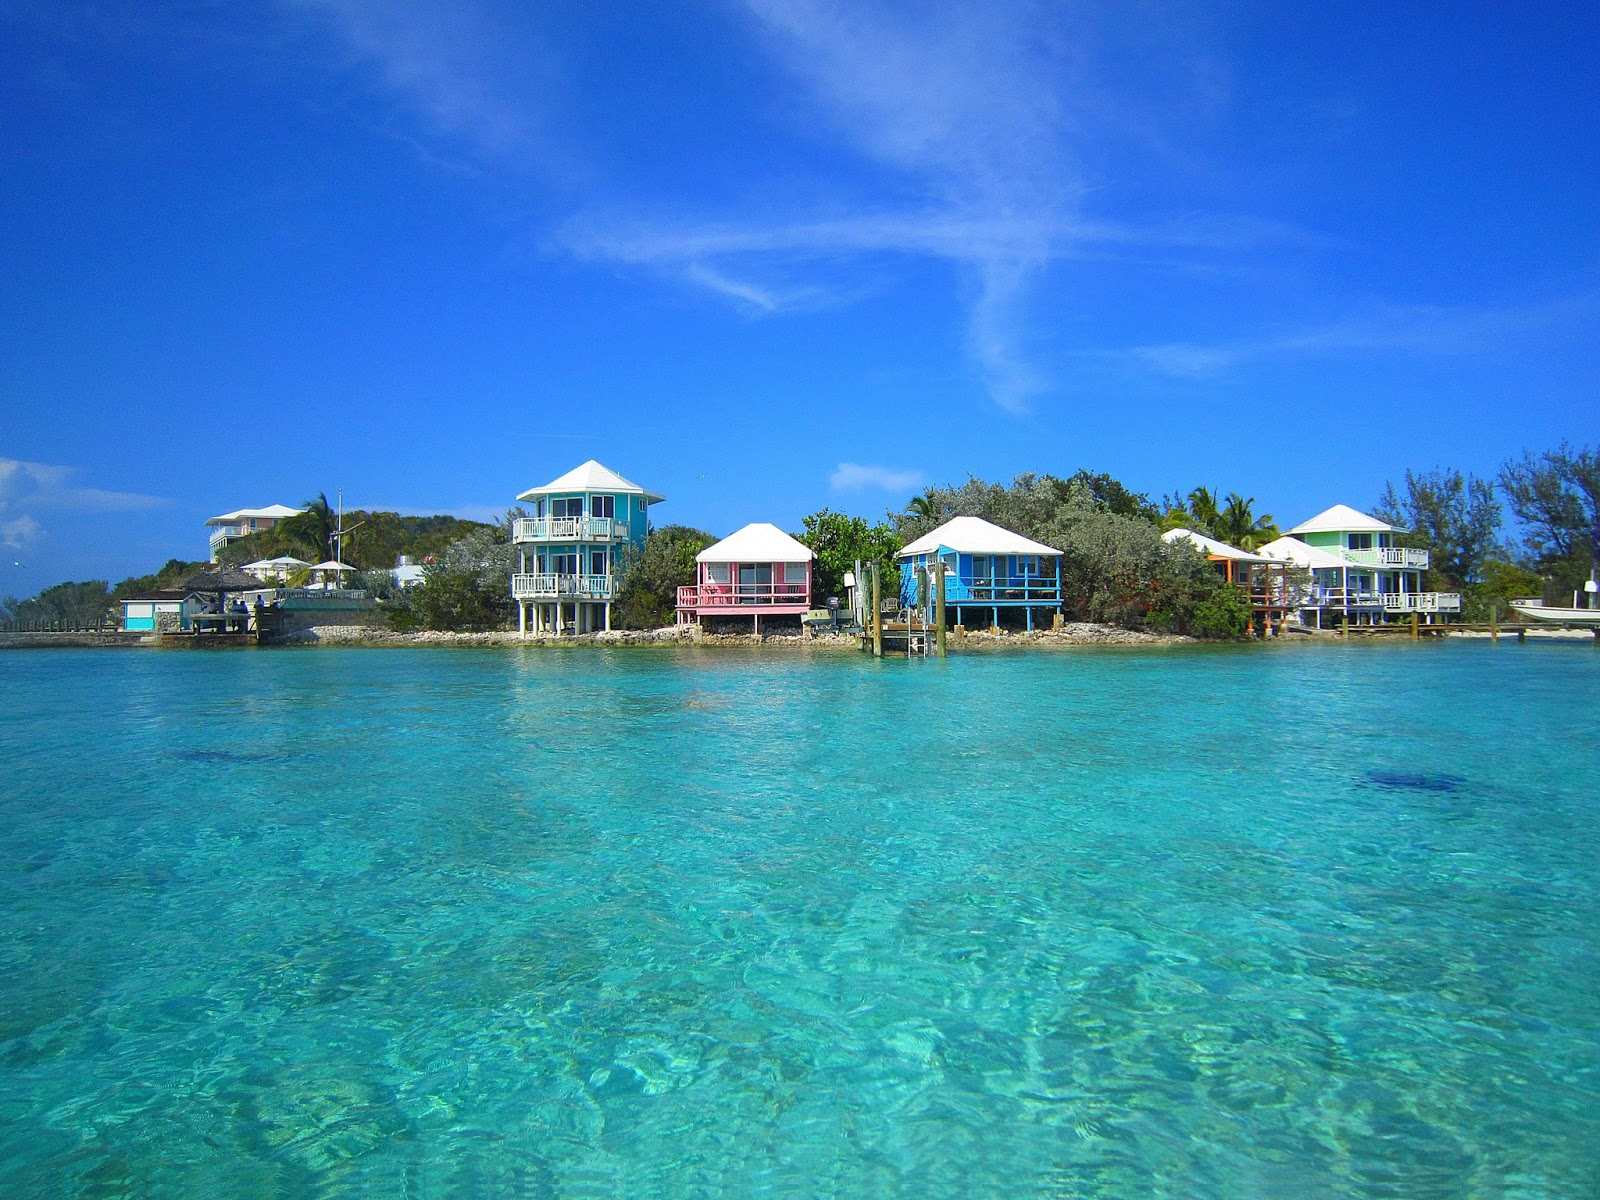 Small hope bay lodge andros island bahamas island hopping in the but not all of us are pilots or have our own planes yet so theres another option small hope bay lodge on beautiful andros island has partnered publicscrutiny Images